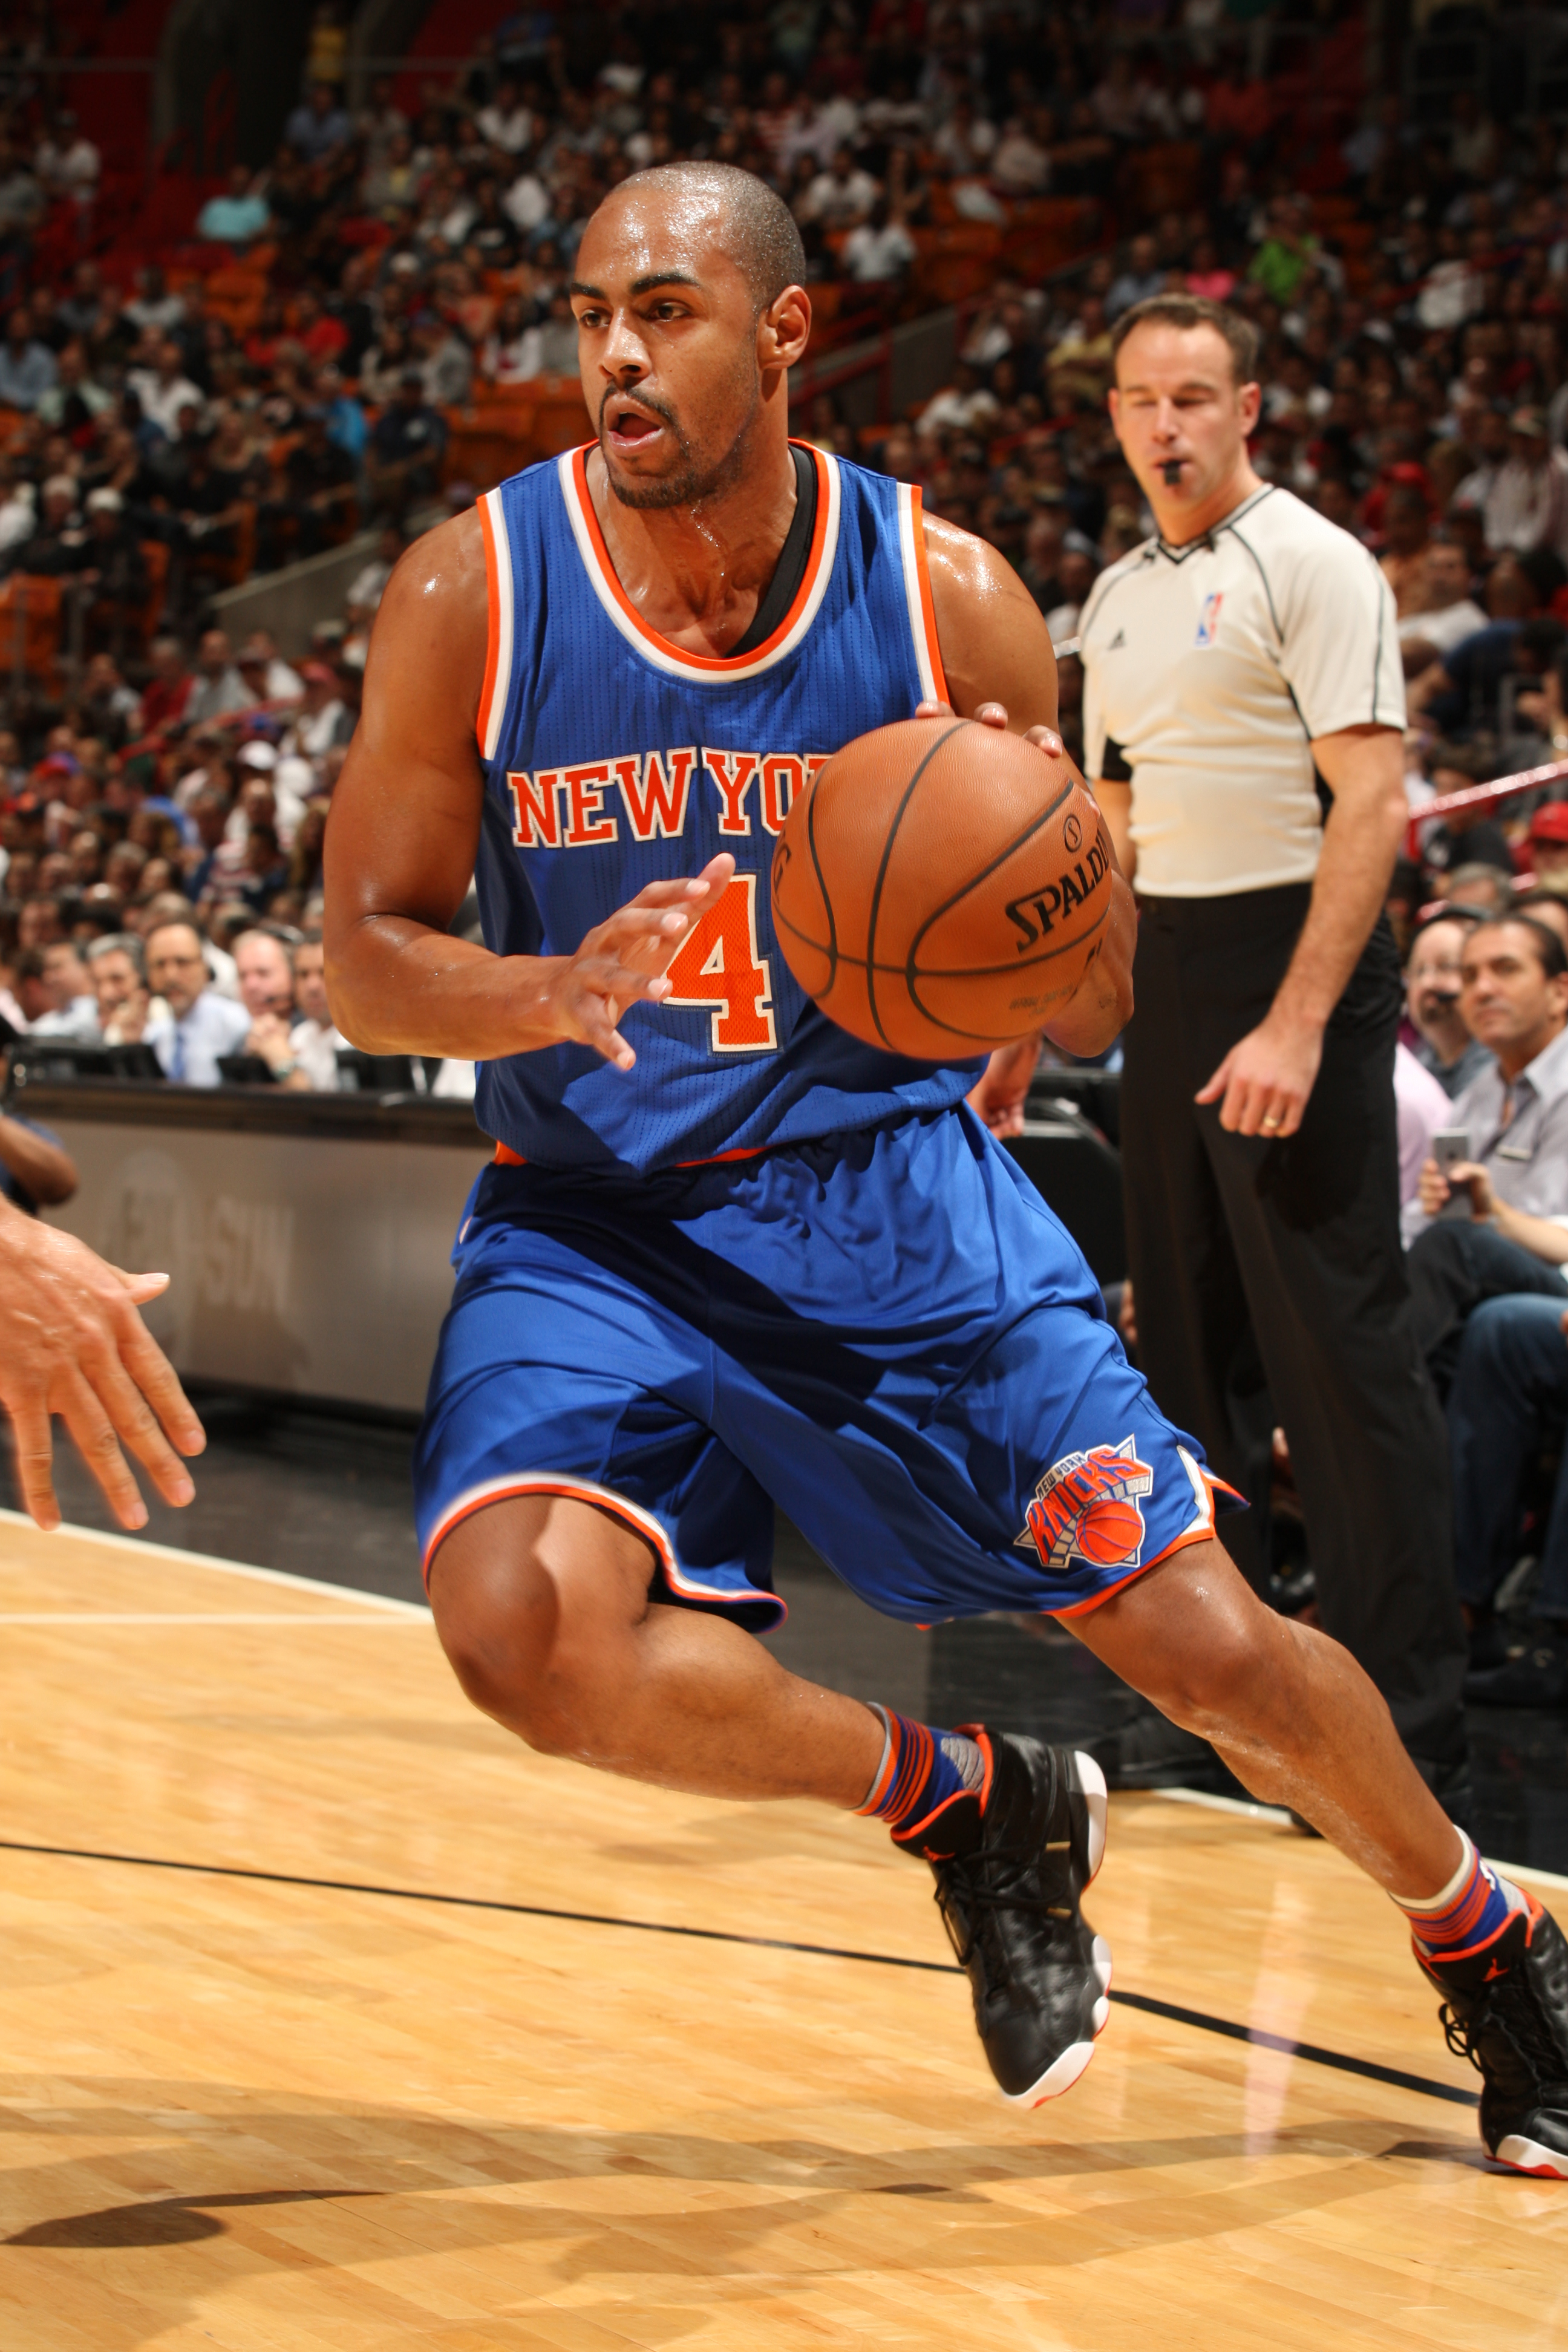 MIAMI, FL - NOVEMBER 23: Arron Afflalo #4 of the New York Knicks drives to the basket against the Miami Heat on November 23, 2015 at American Airlines Arena in Miami, Florida. (Photo by Oscar Baldizon/NBAE via Getty Images)